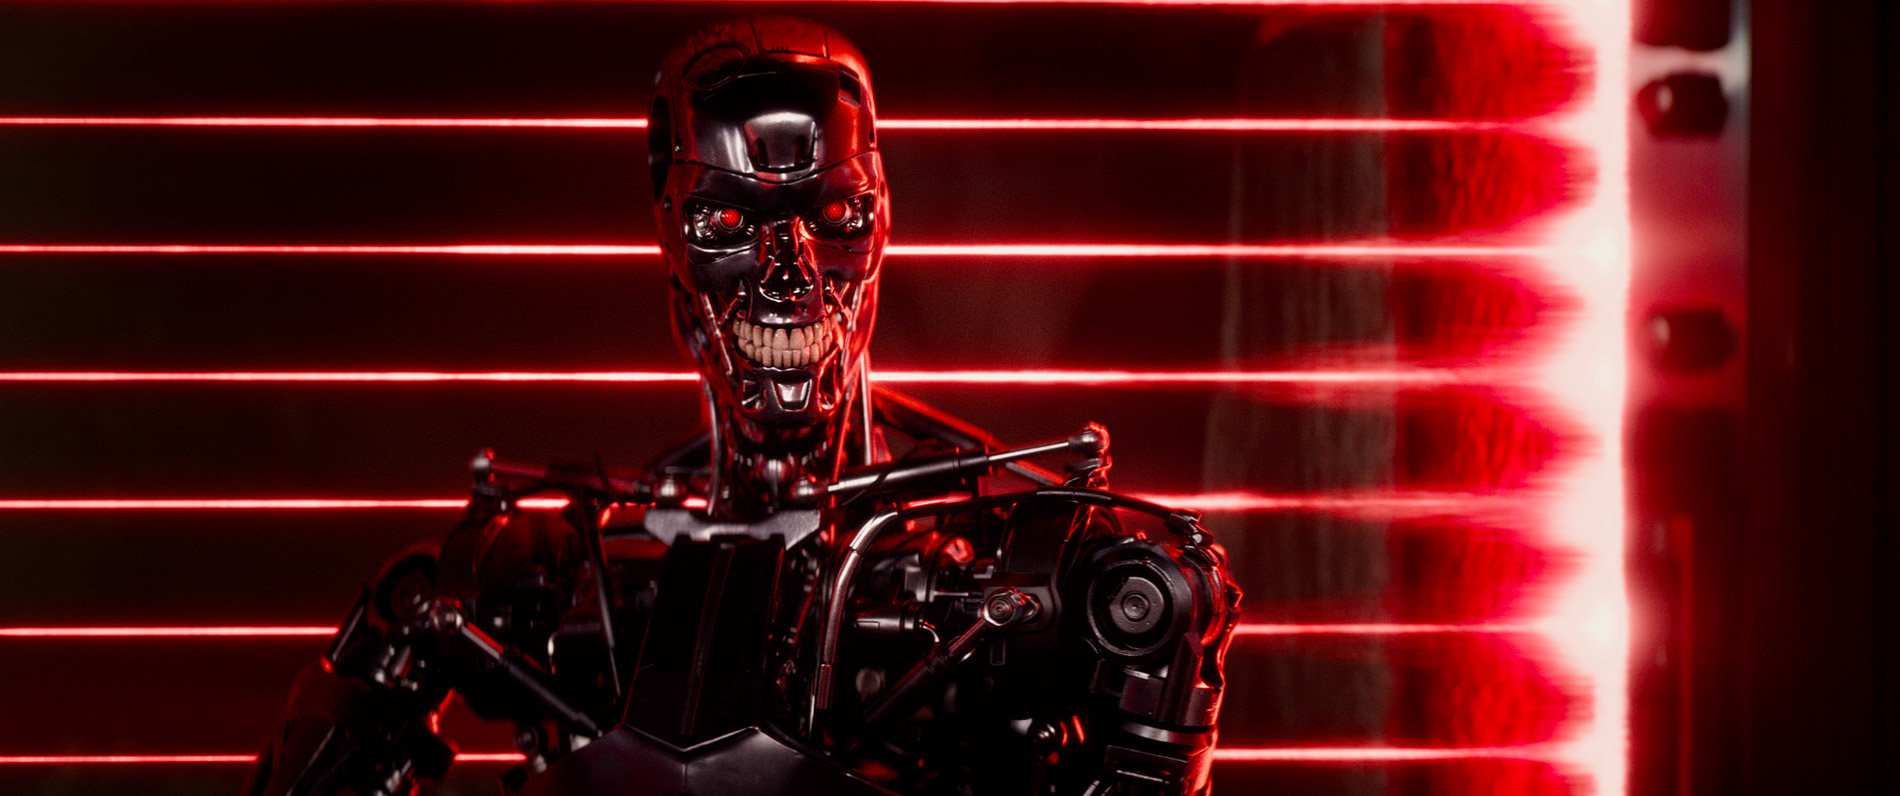 Terminator Genisys Kick-Starts Another Round of Sequels – Oh, and See this in 2D